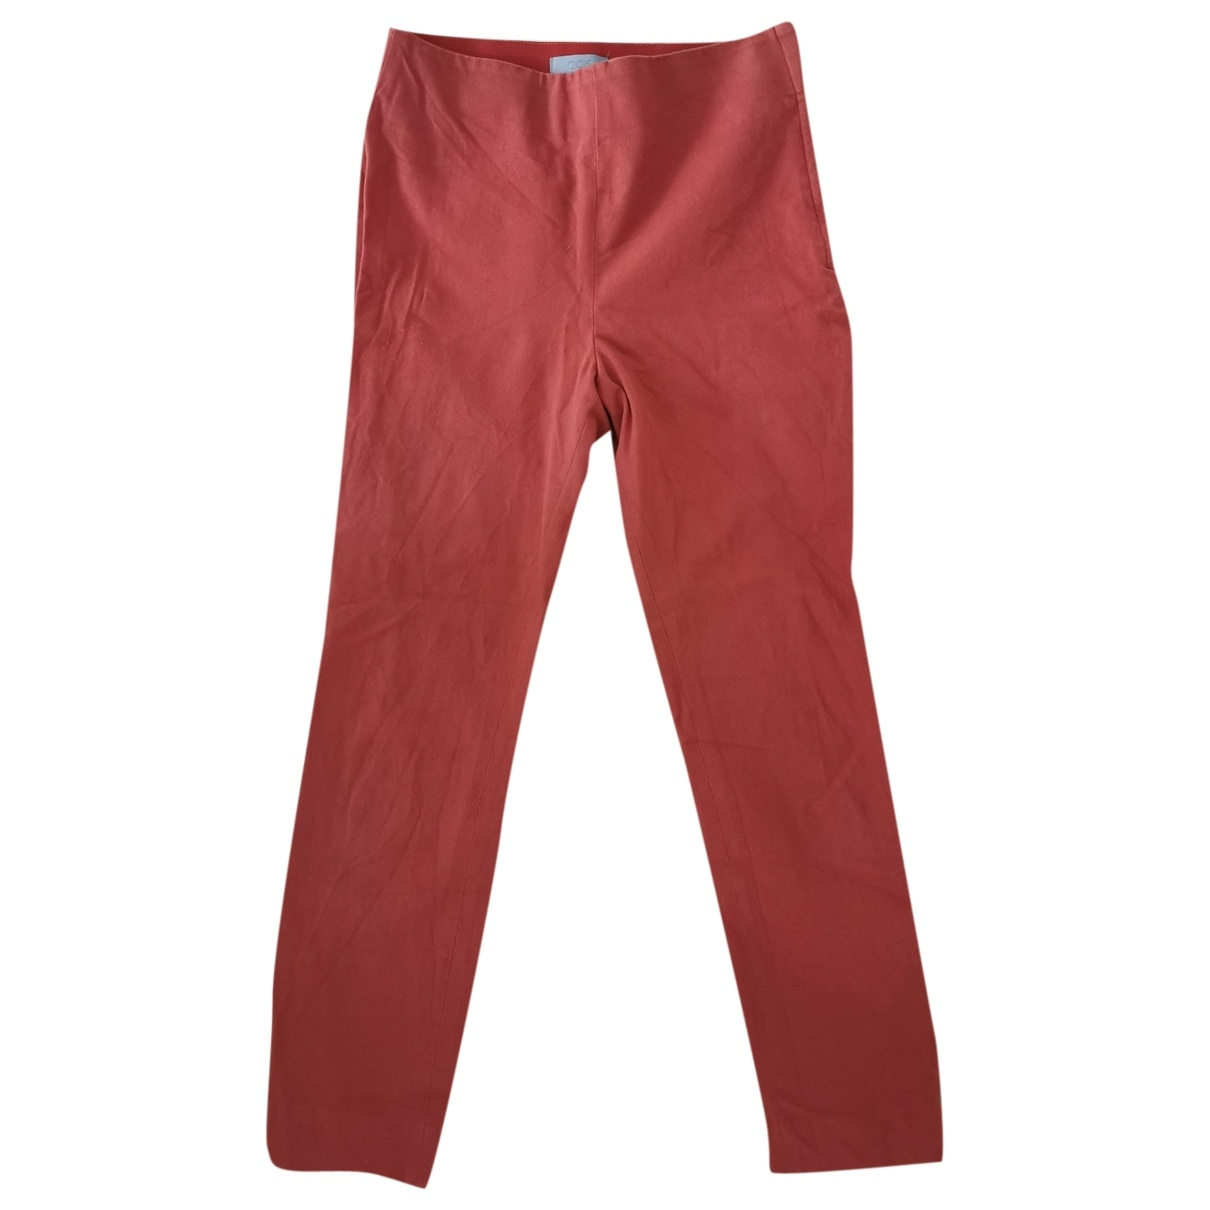 Cos \N Red Cotton Trousers for Women 36 FR